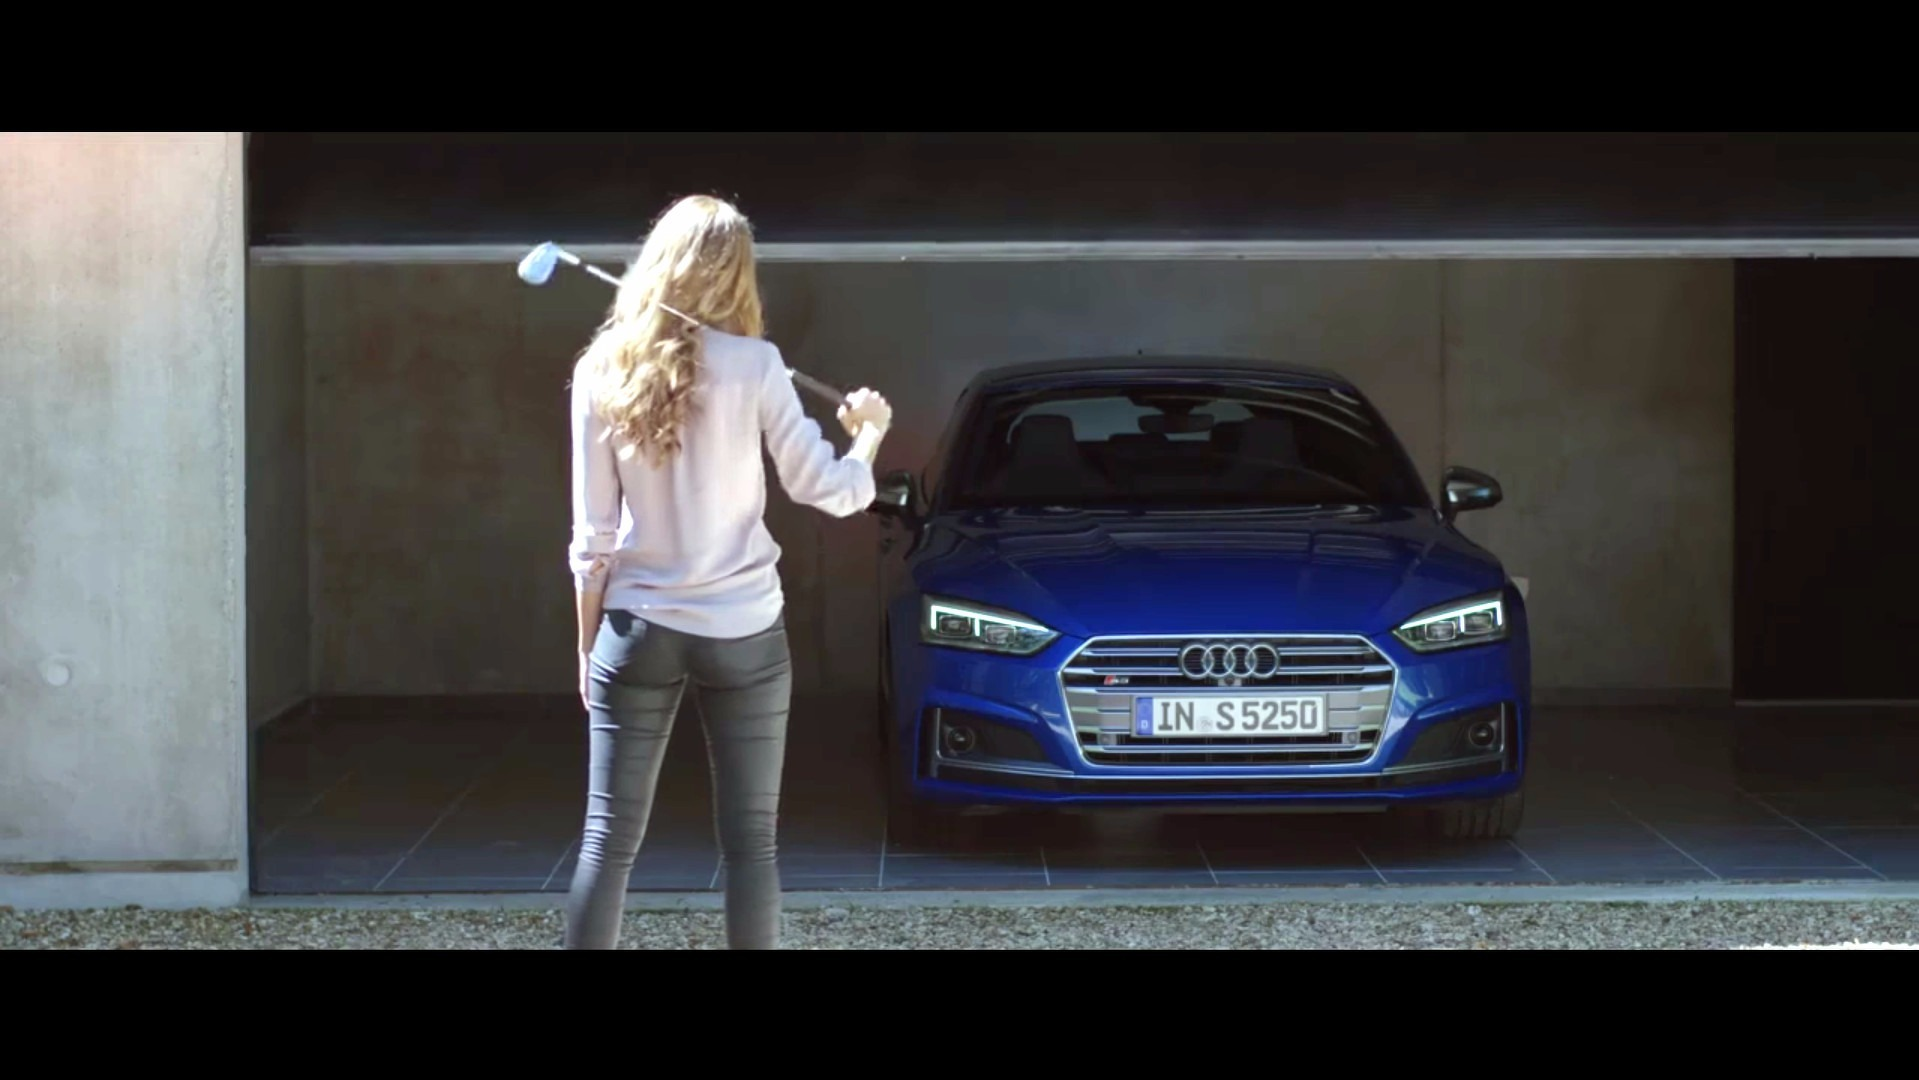 Audi S Escapes Scorned Womans Fury In Latest Commercial - Audi car commercial